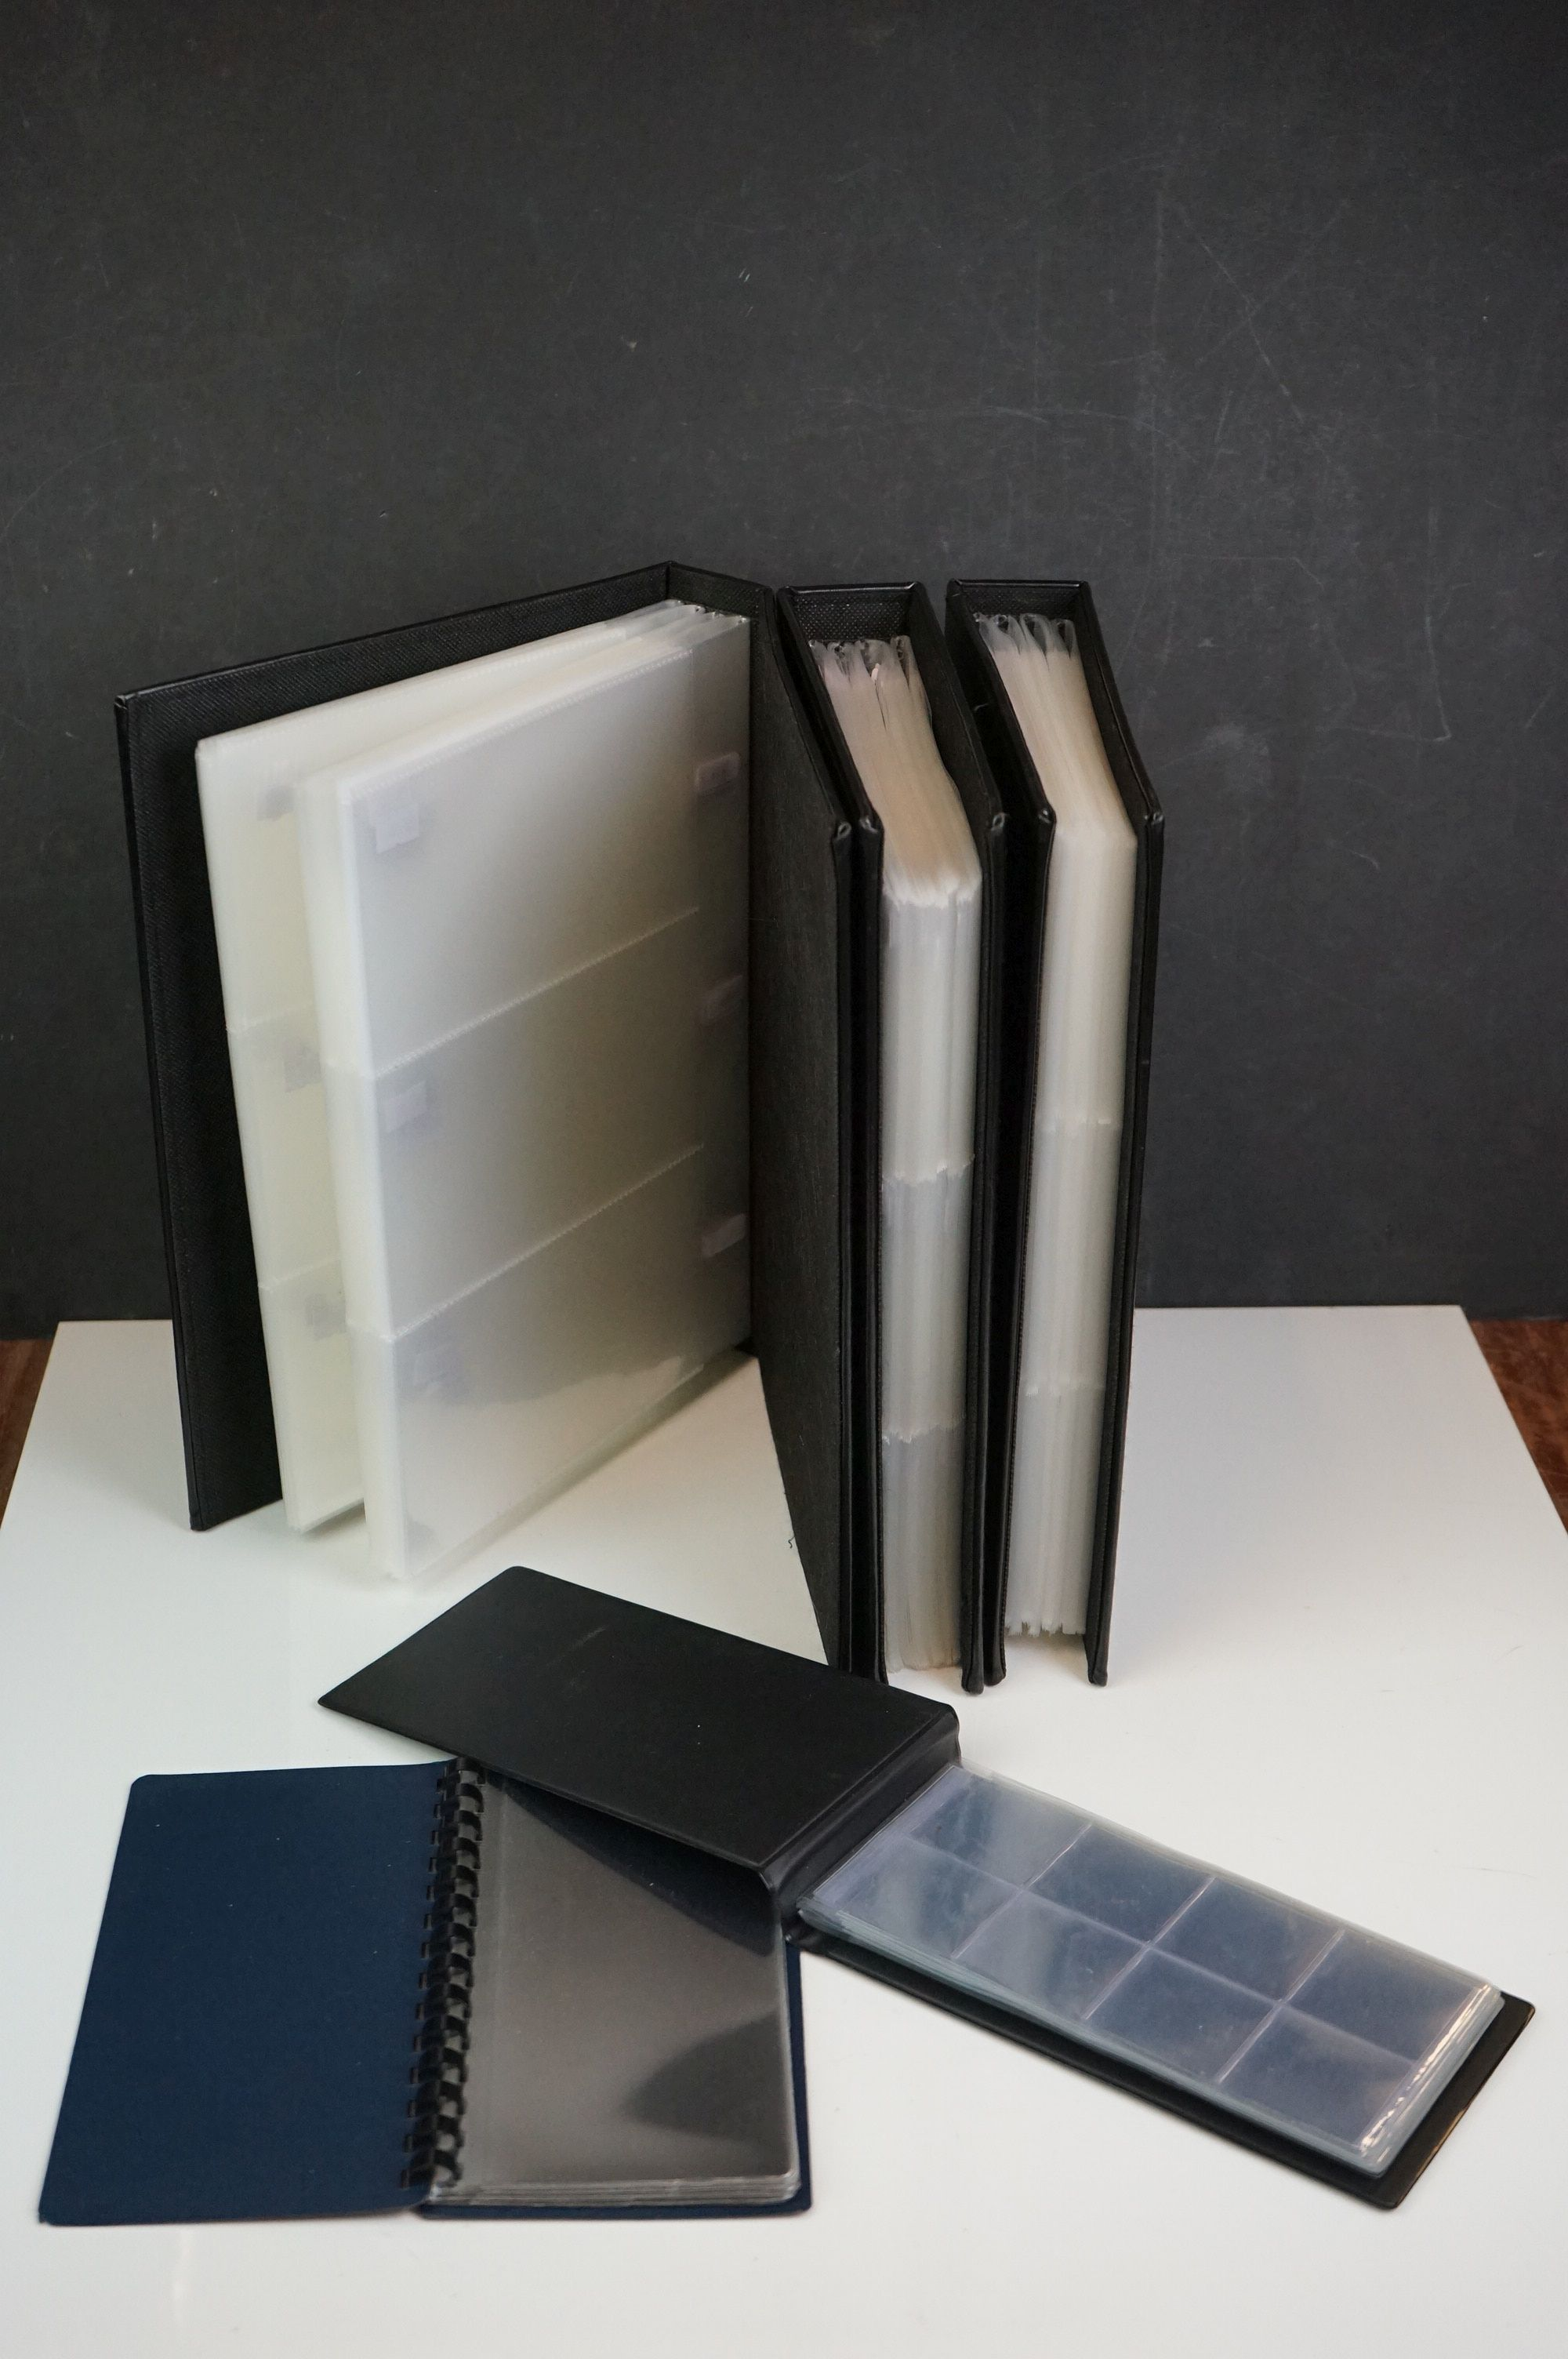 A collection of coin and banknote storage books and cases together with related reference books. - Image 7 of 7